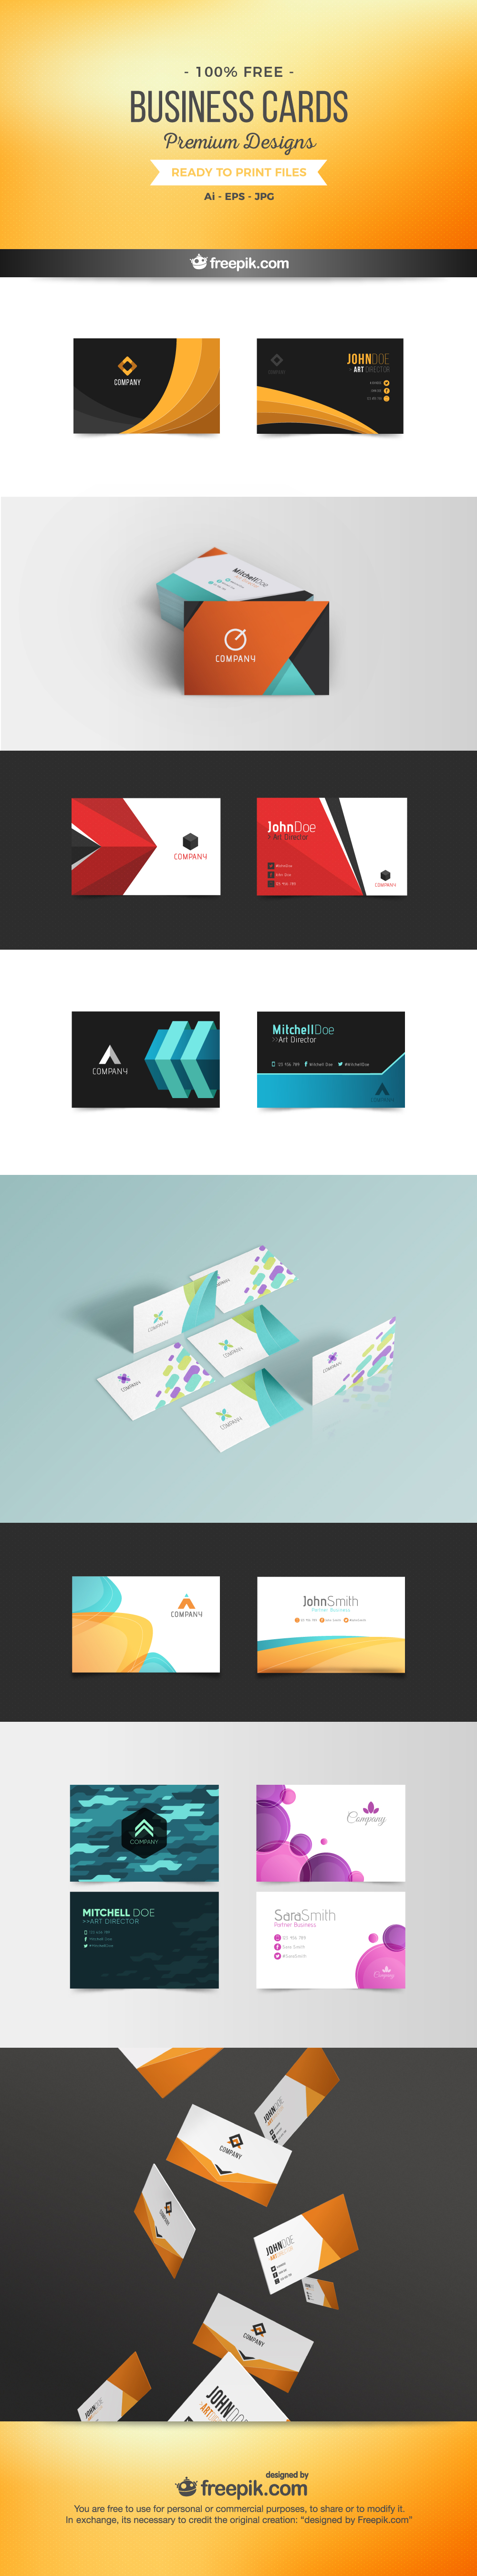 free premium business cards on vectorgraphit